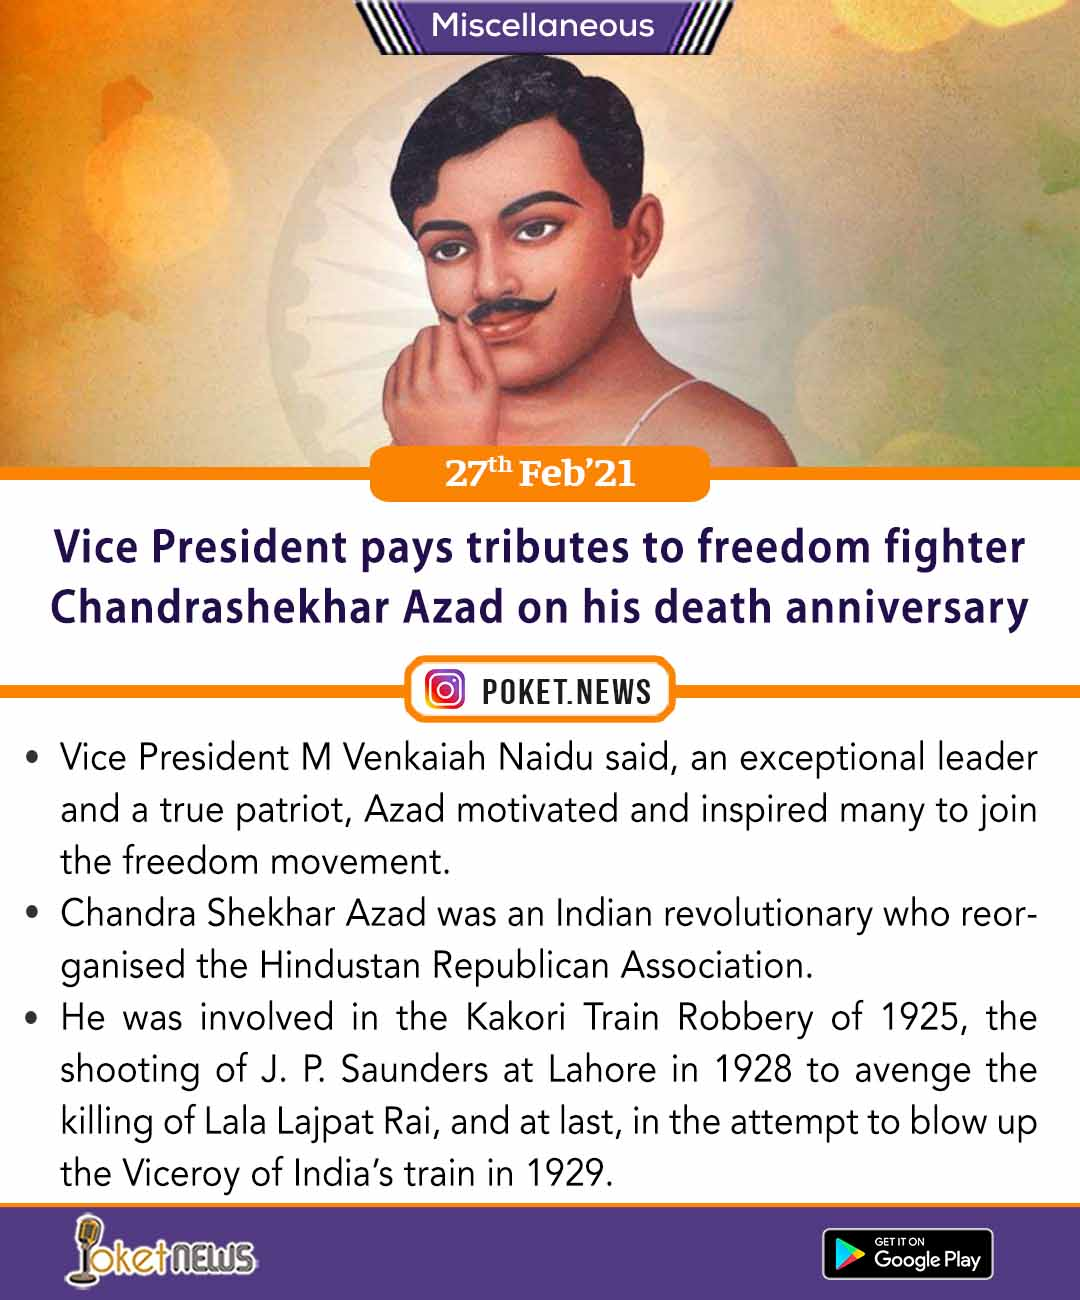 Vice President pays tributes to freedom fighter Chandrashekhar Azad on his death anniversary